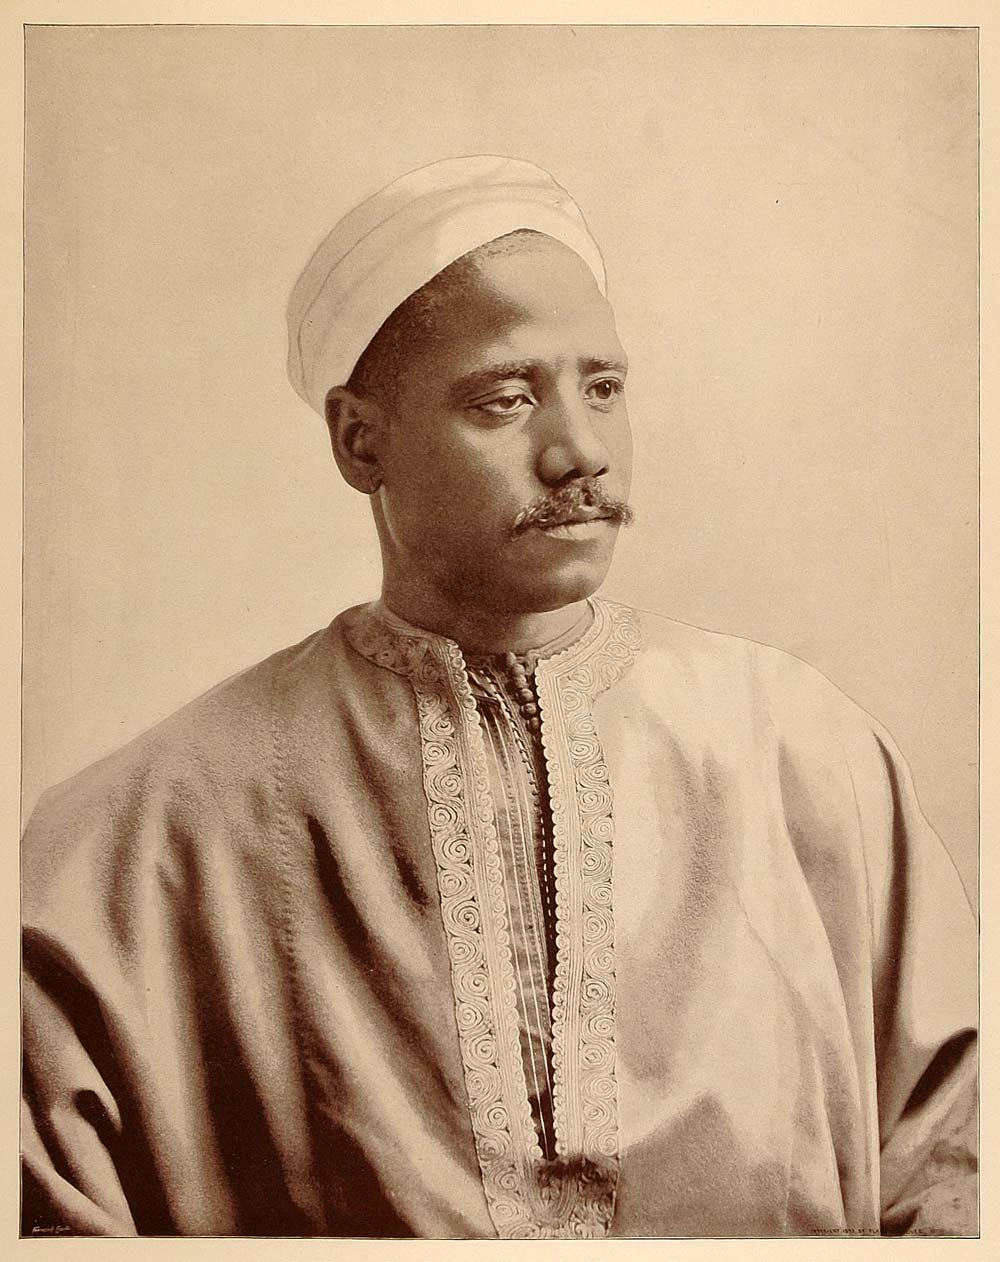 1893 Chicago World's Fair Ethnic Portrait Egyptian Man Turban Camel Boy Costume